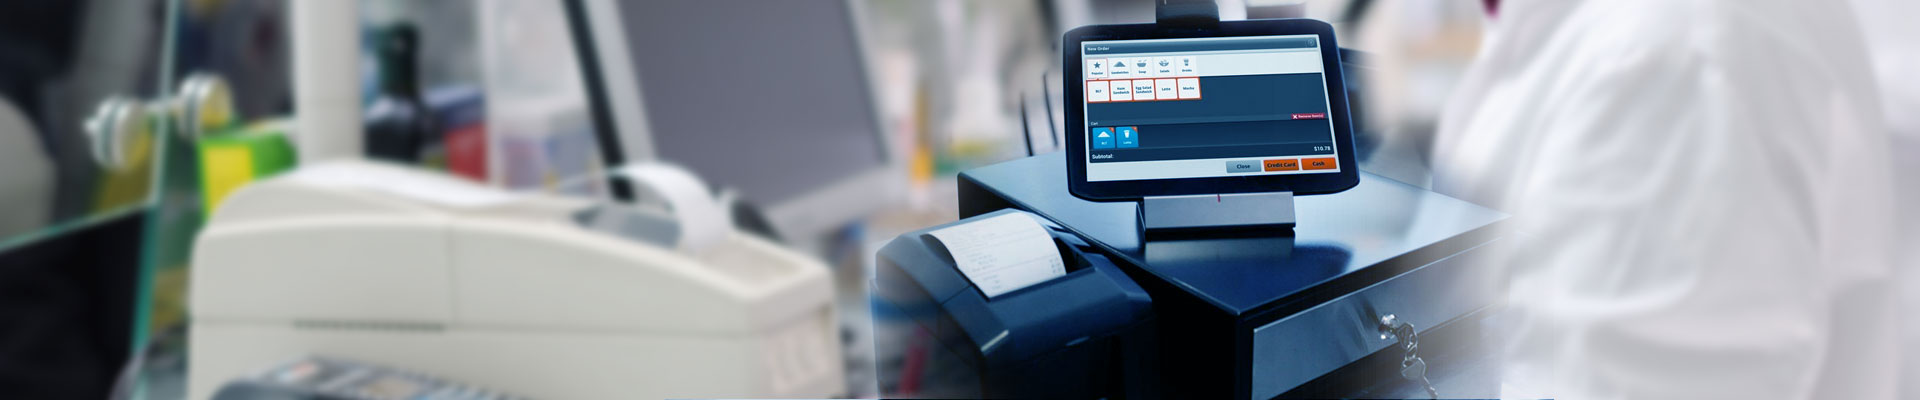 POS Software System